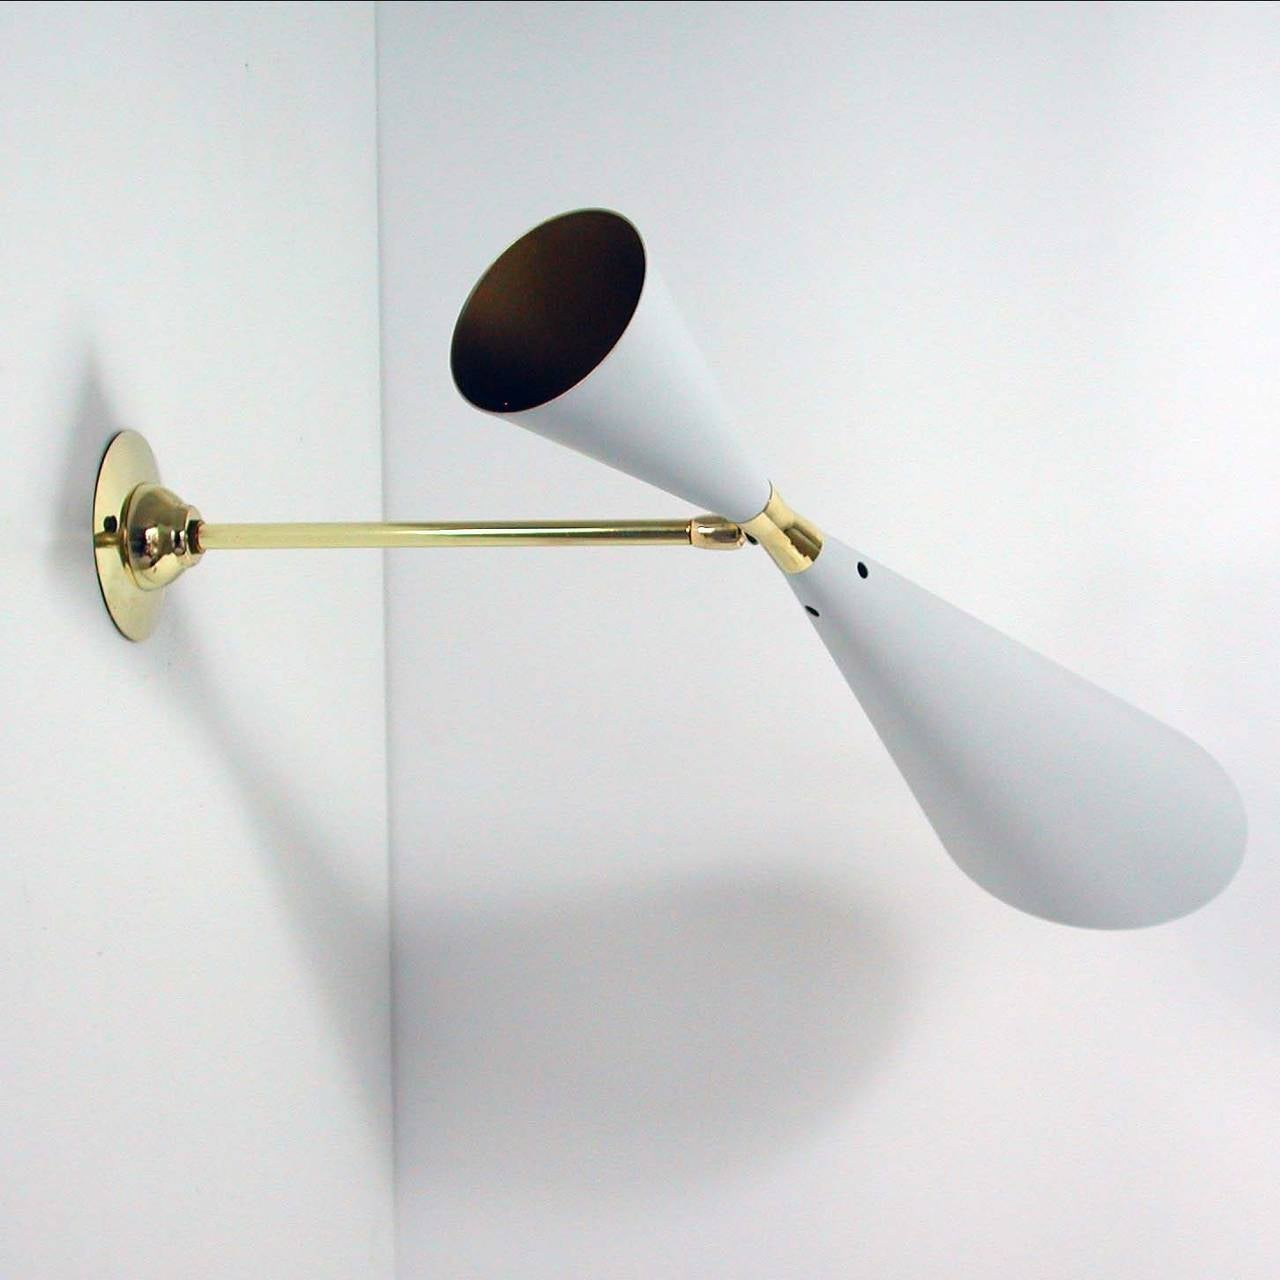 Lacquered Mid-Century French 1950s Diabolo Wall Light Sconce from the Guariche Lunel Era